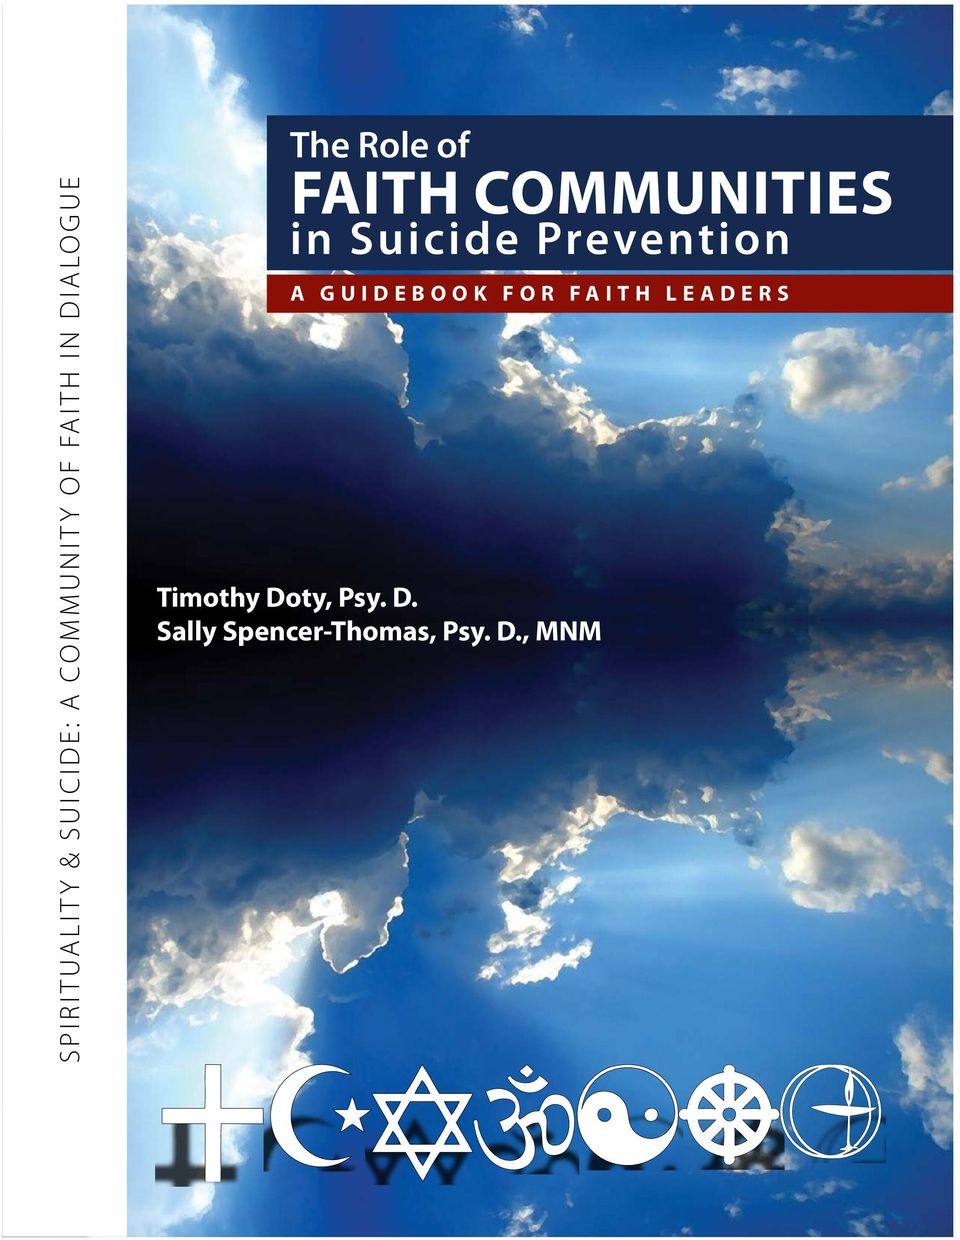 Suicide Prevention A GUIDEBOOK FOR FAITH LEADERS